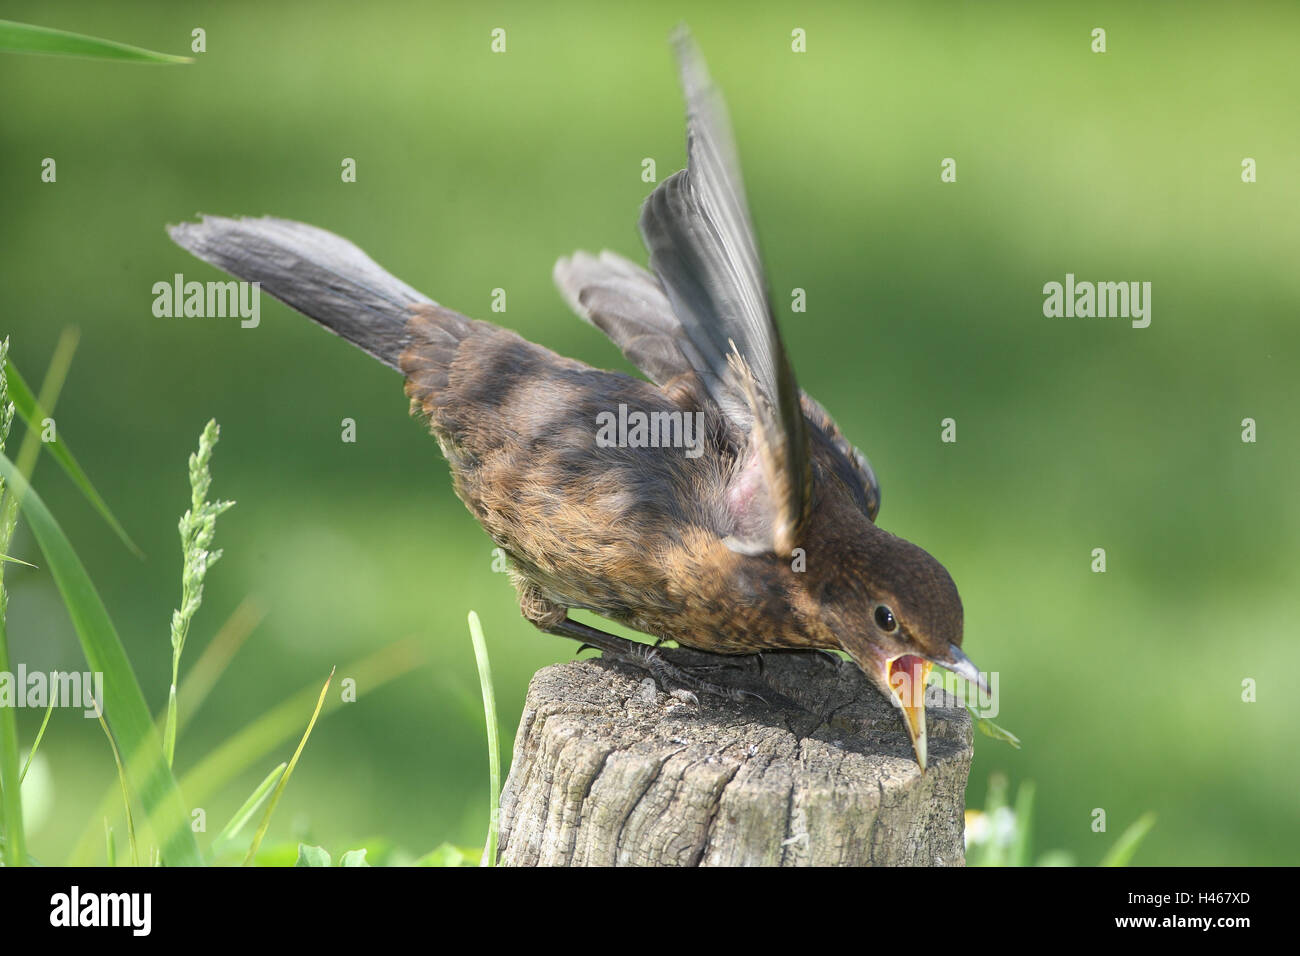 Blackbird, young bird, lining beg, - Stock Image